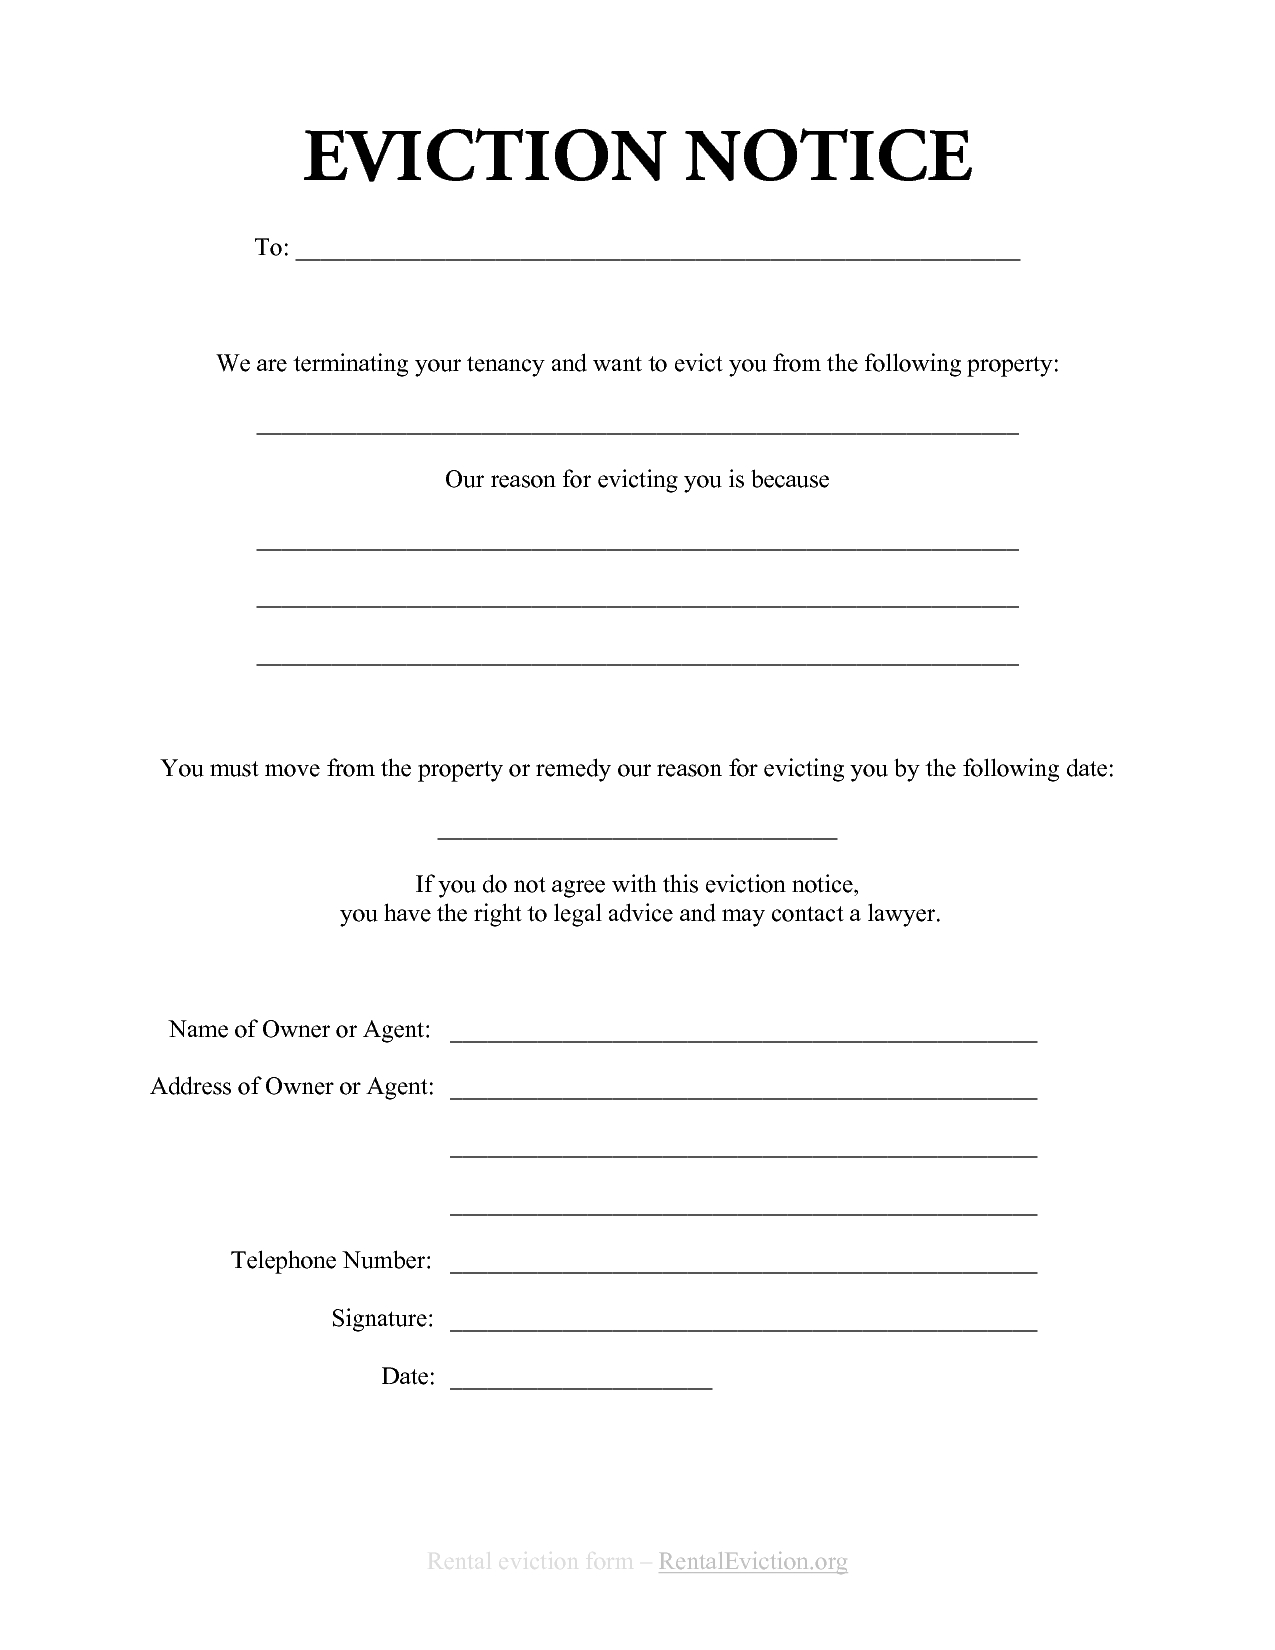 free tenant eviction letter template example-Free Print Out Eviction Notices 17-n